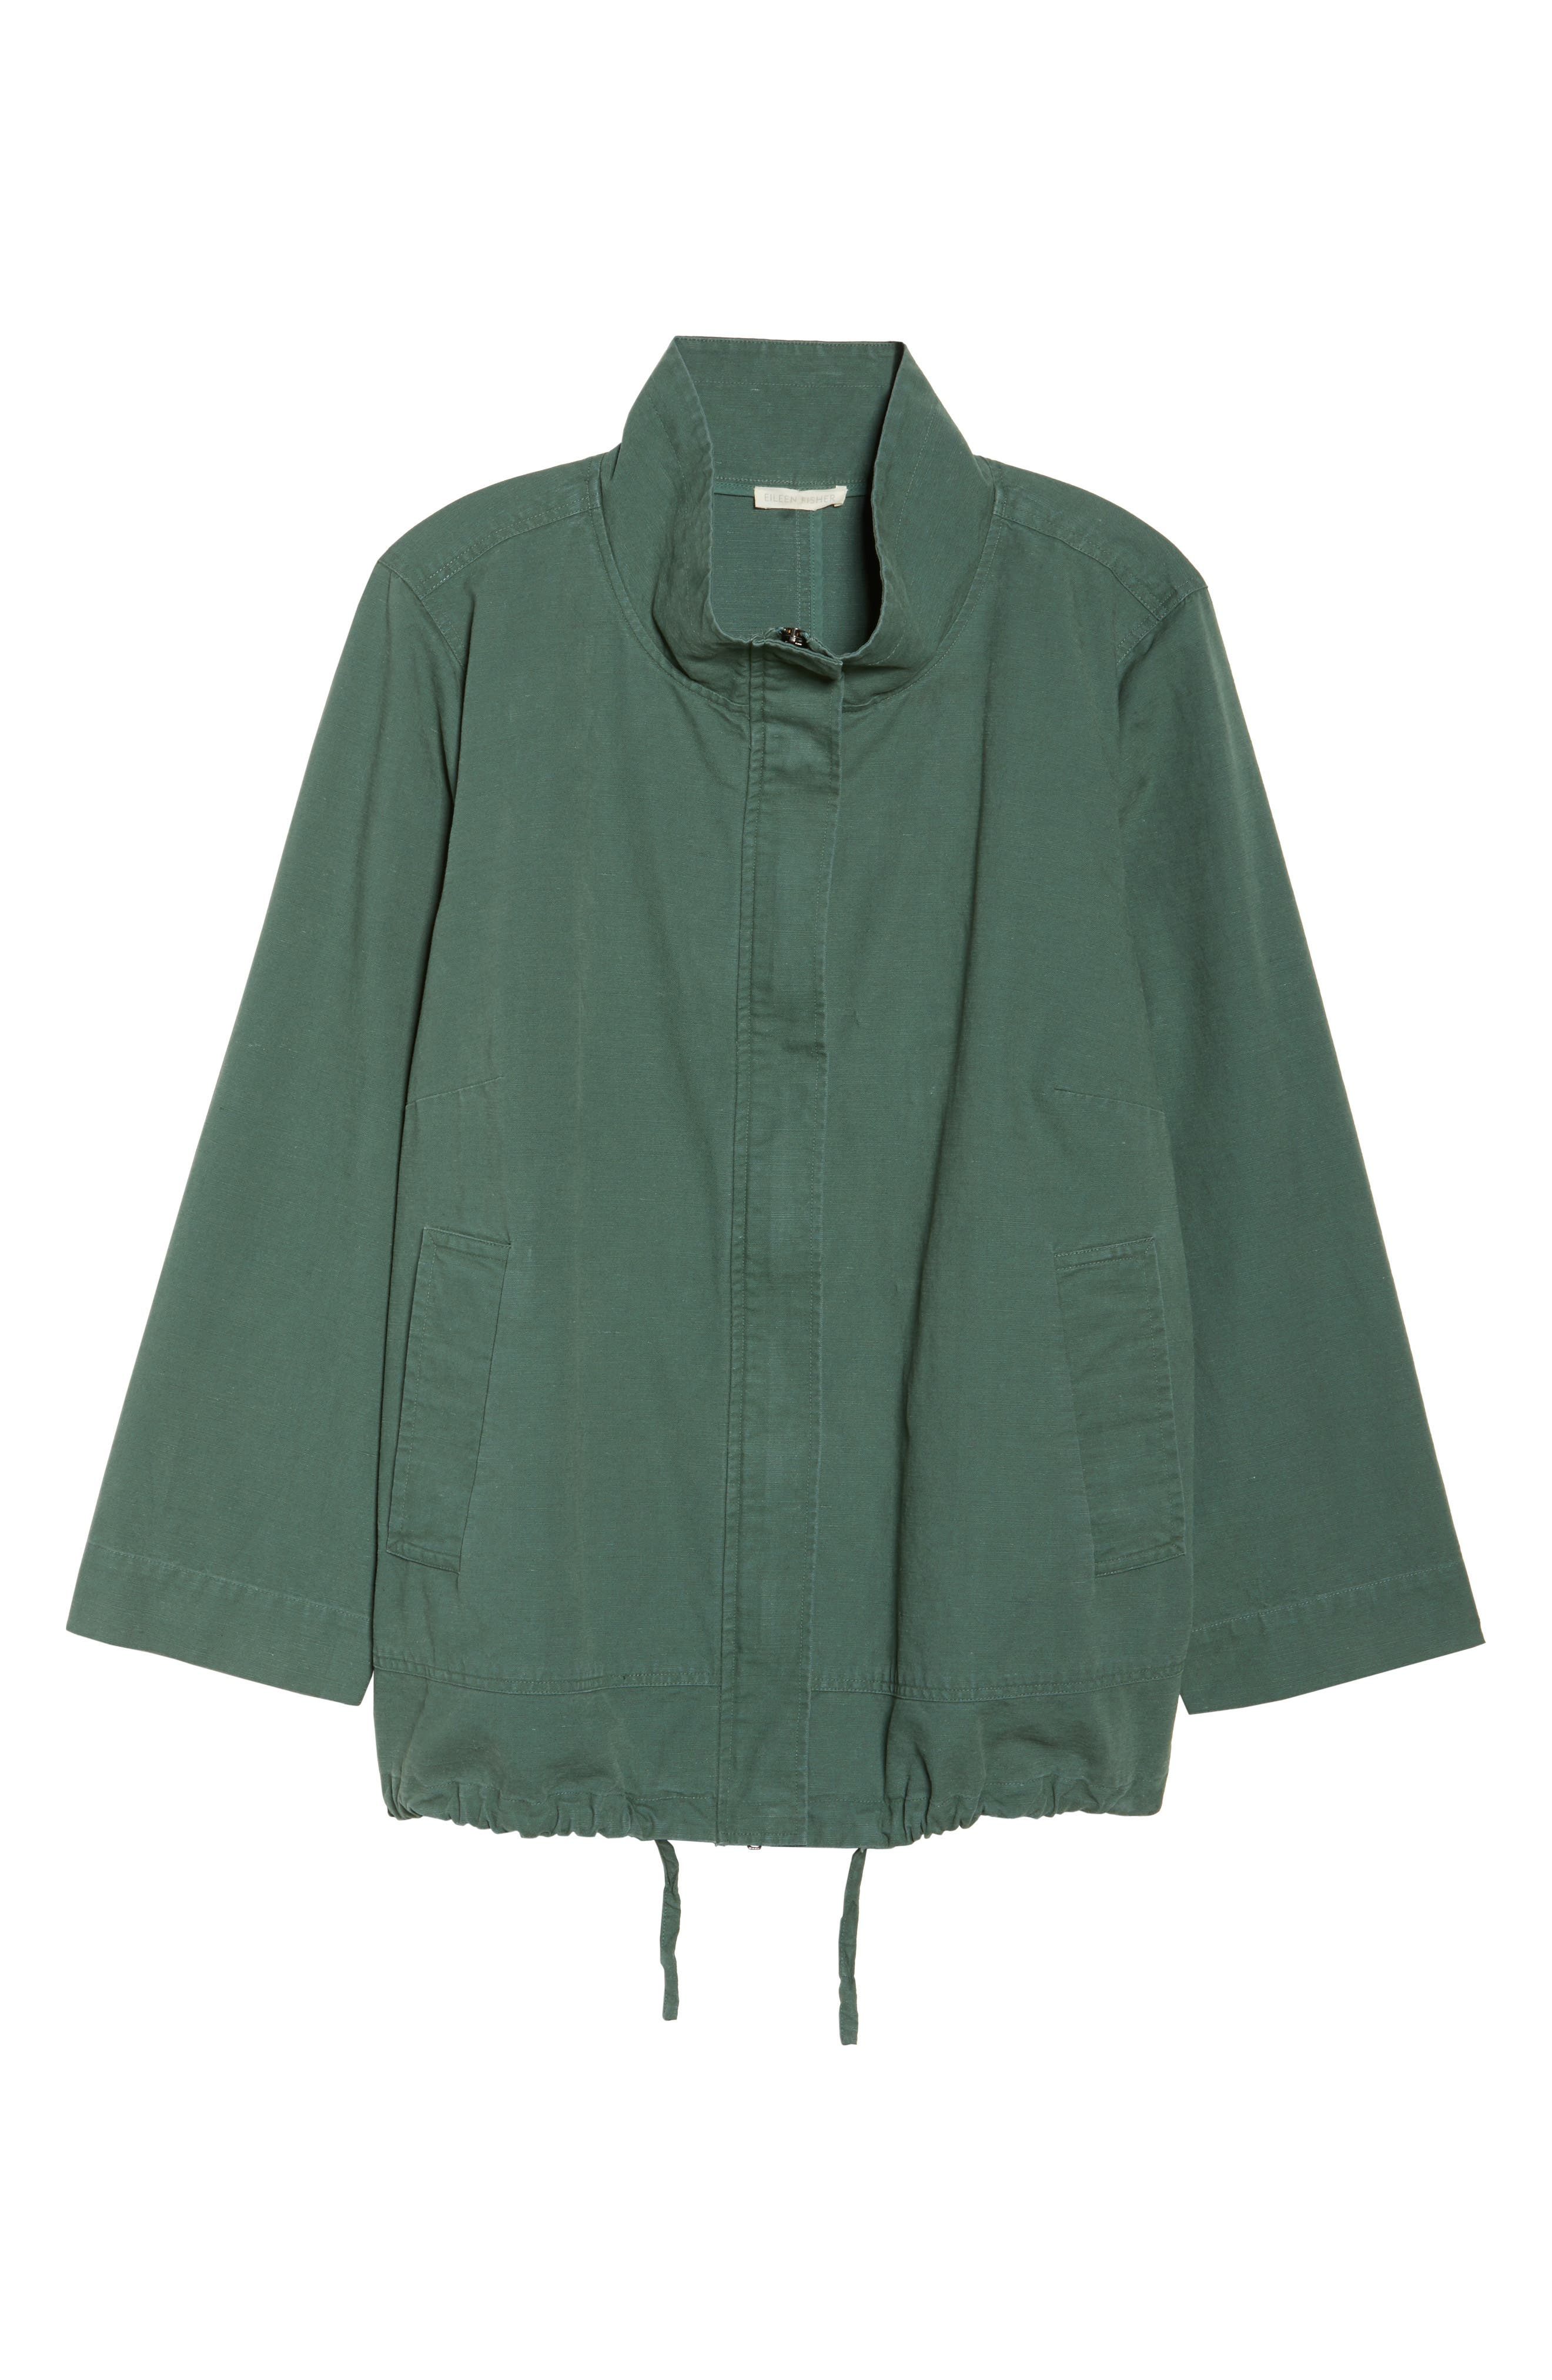 Stand Collar Jacket,                             Alternate thumbnail 5, color,                             554